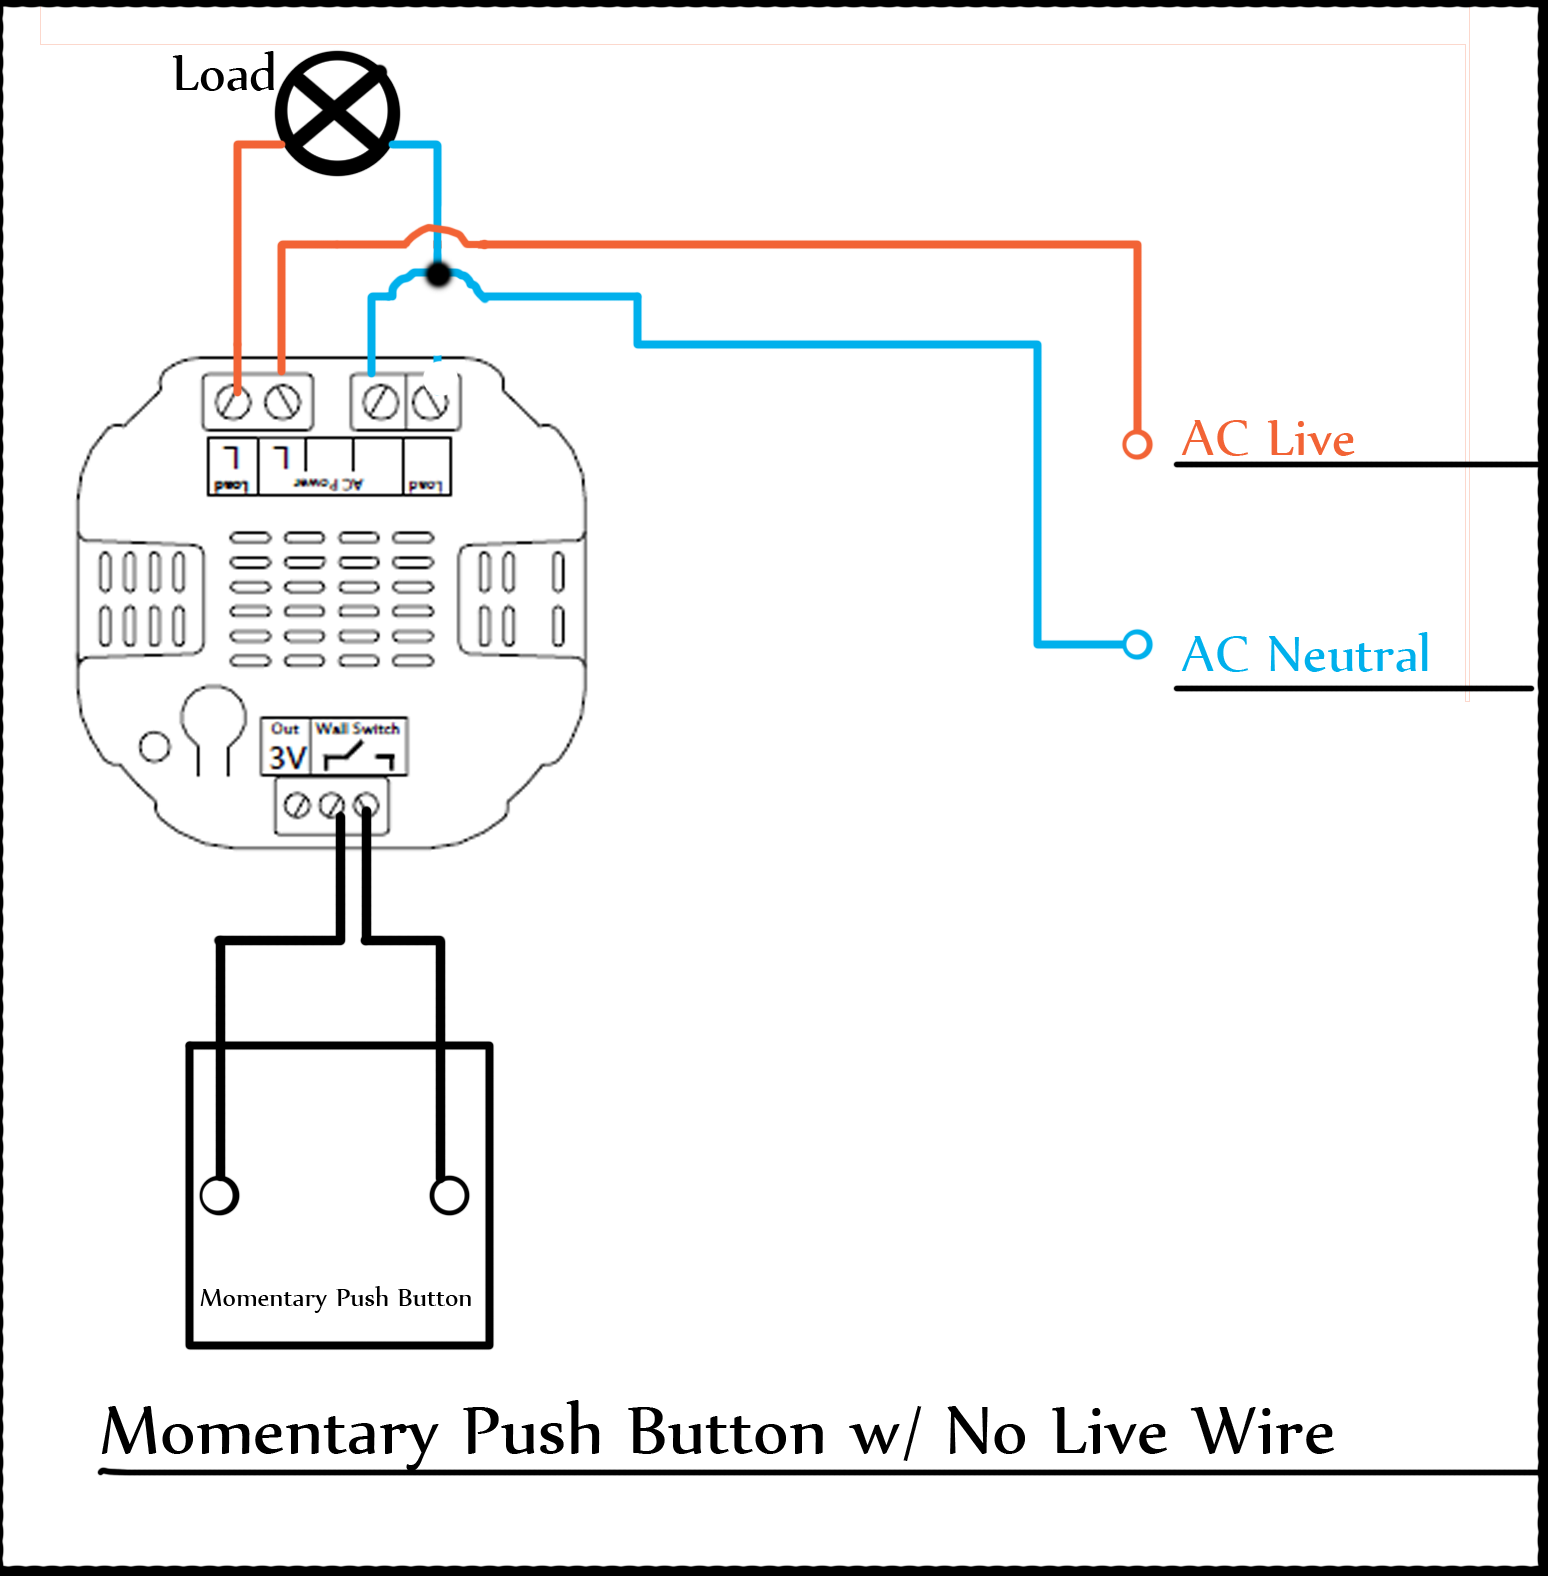 touch lamp switch 10 top 10 reasons to consider touch lamps switch for your home touch lamp control switch wiring diagram at soozxer.org